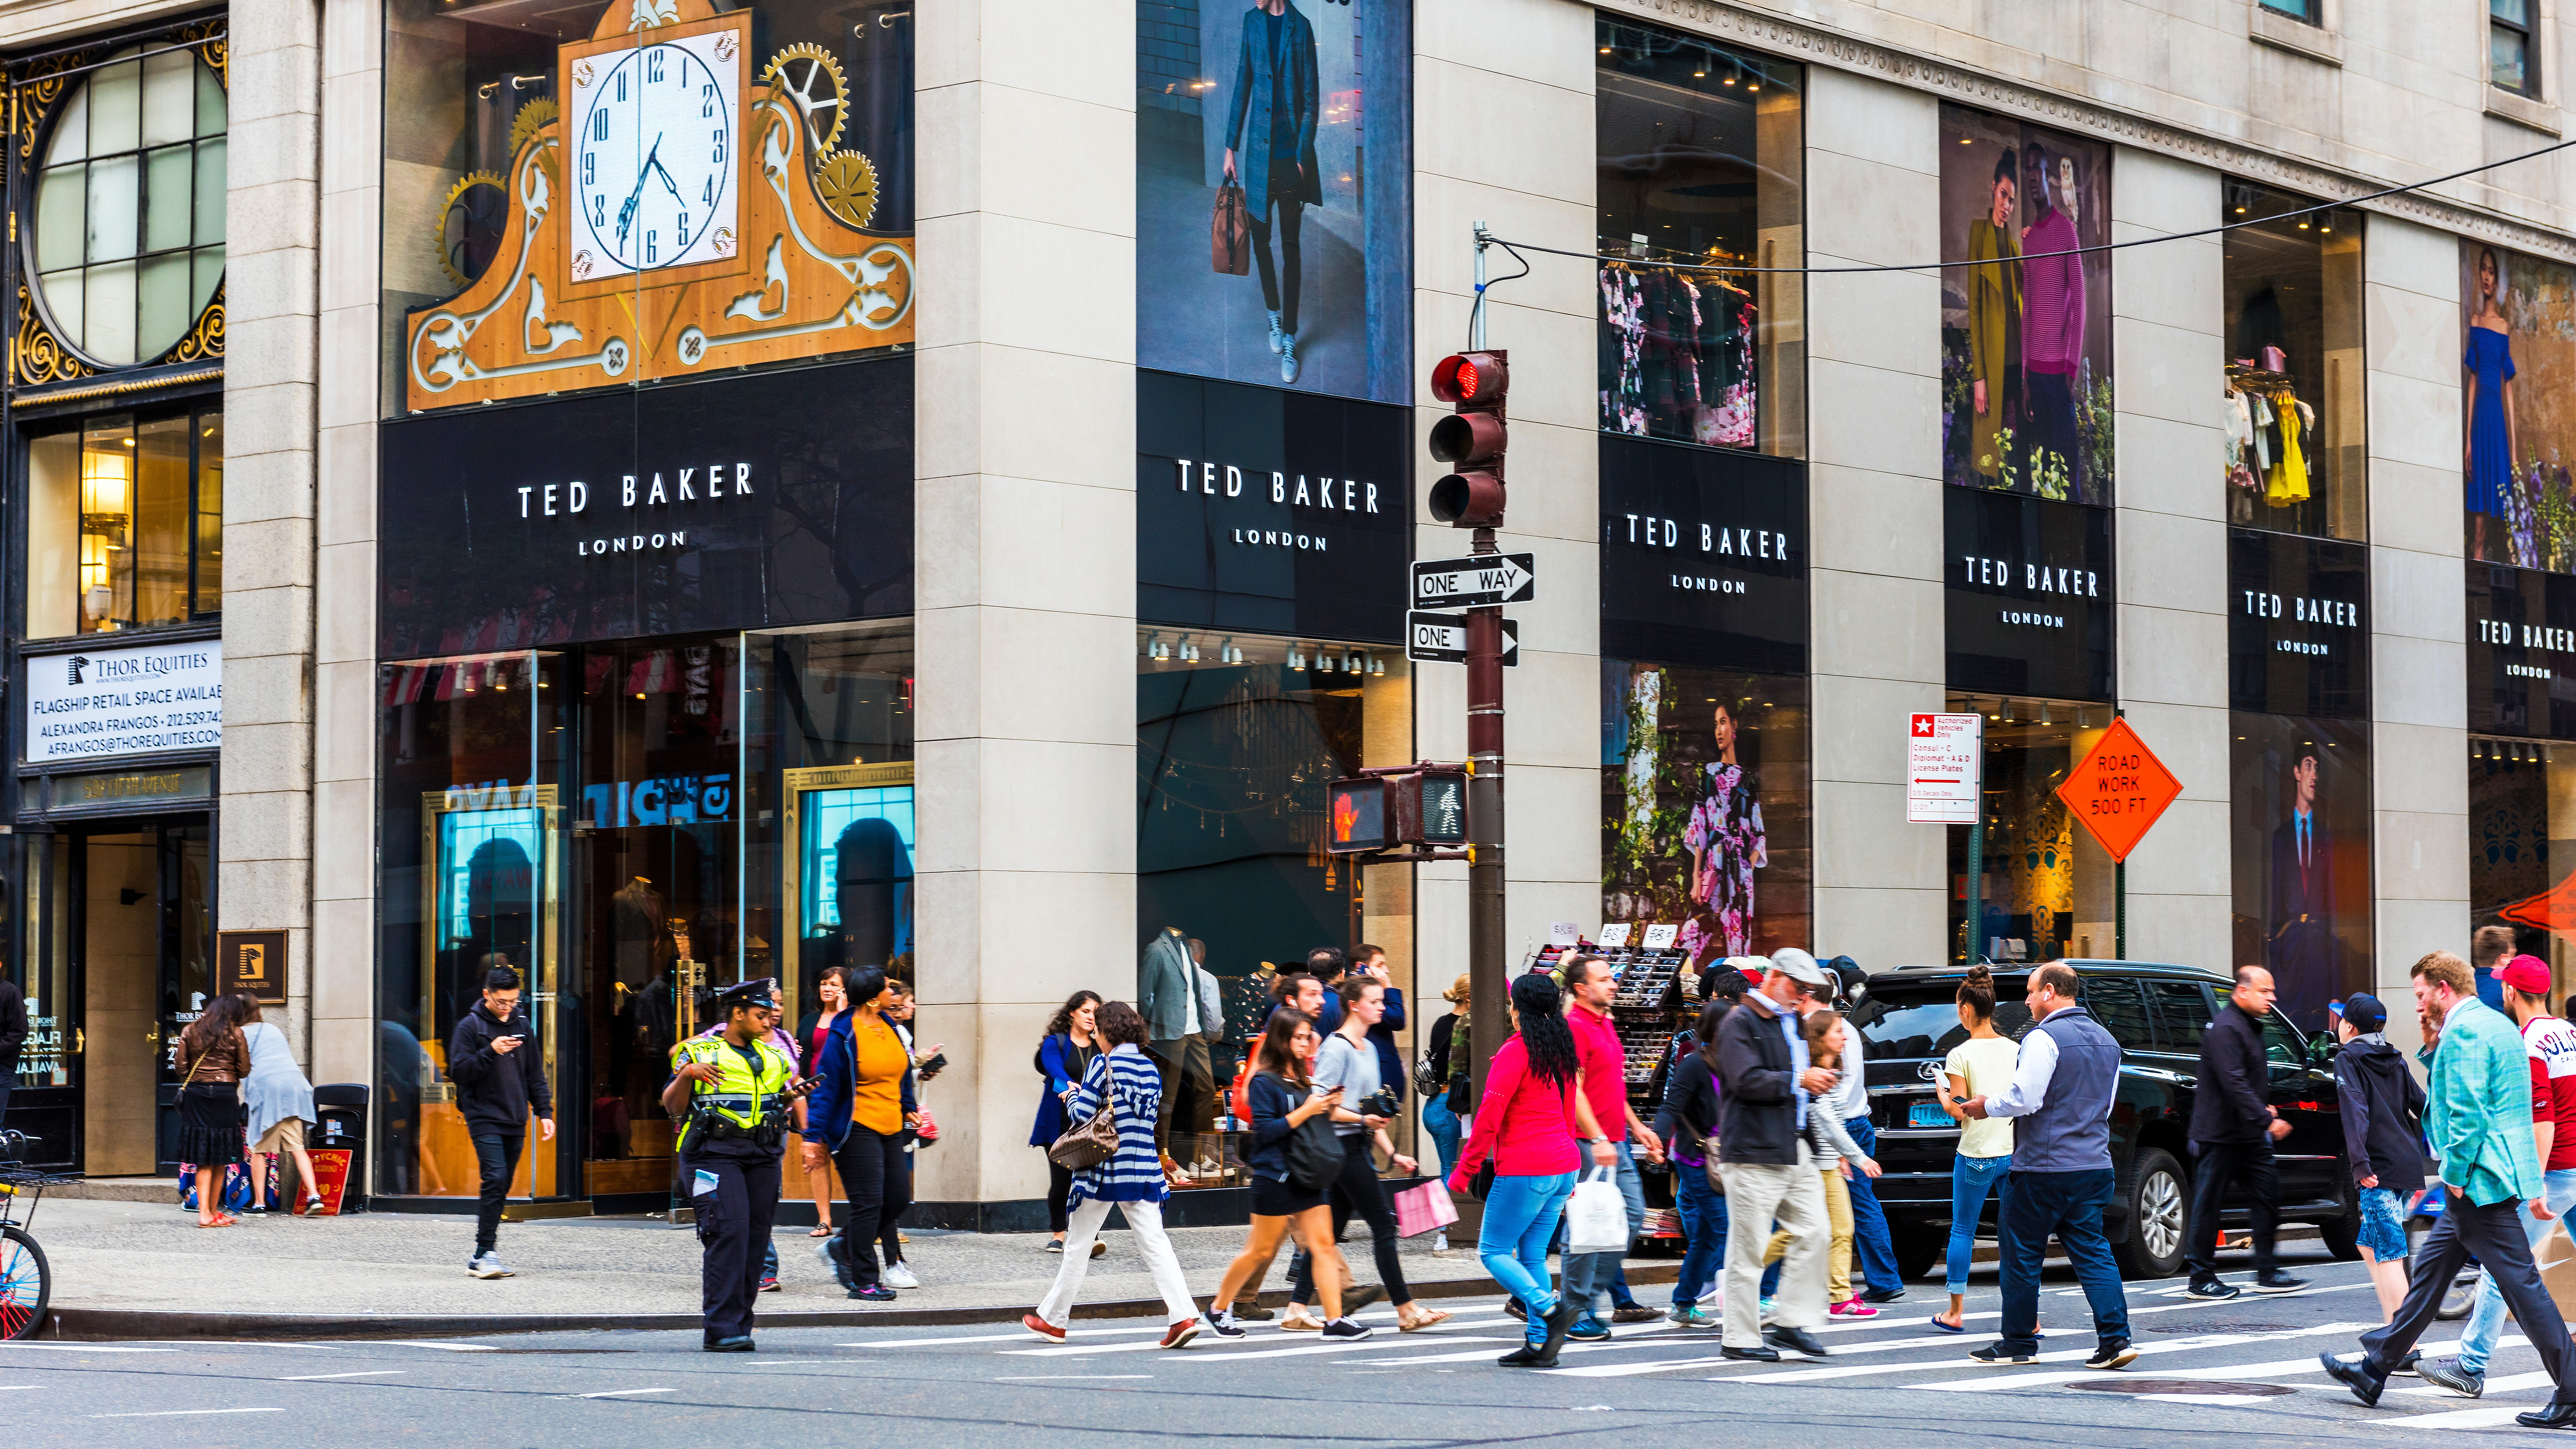 Ted Baker store | Source: Shutterstock